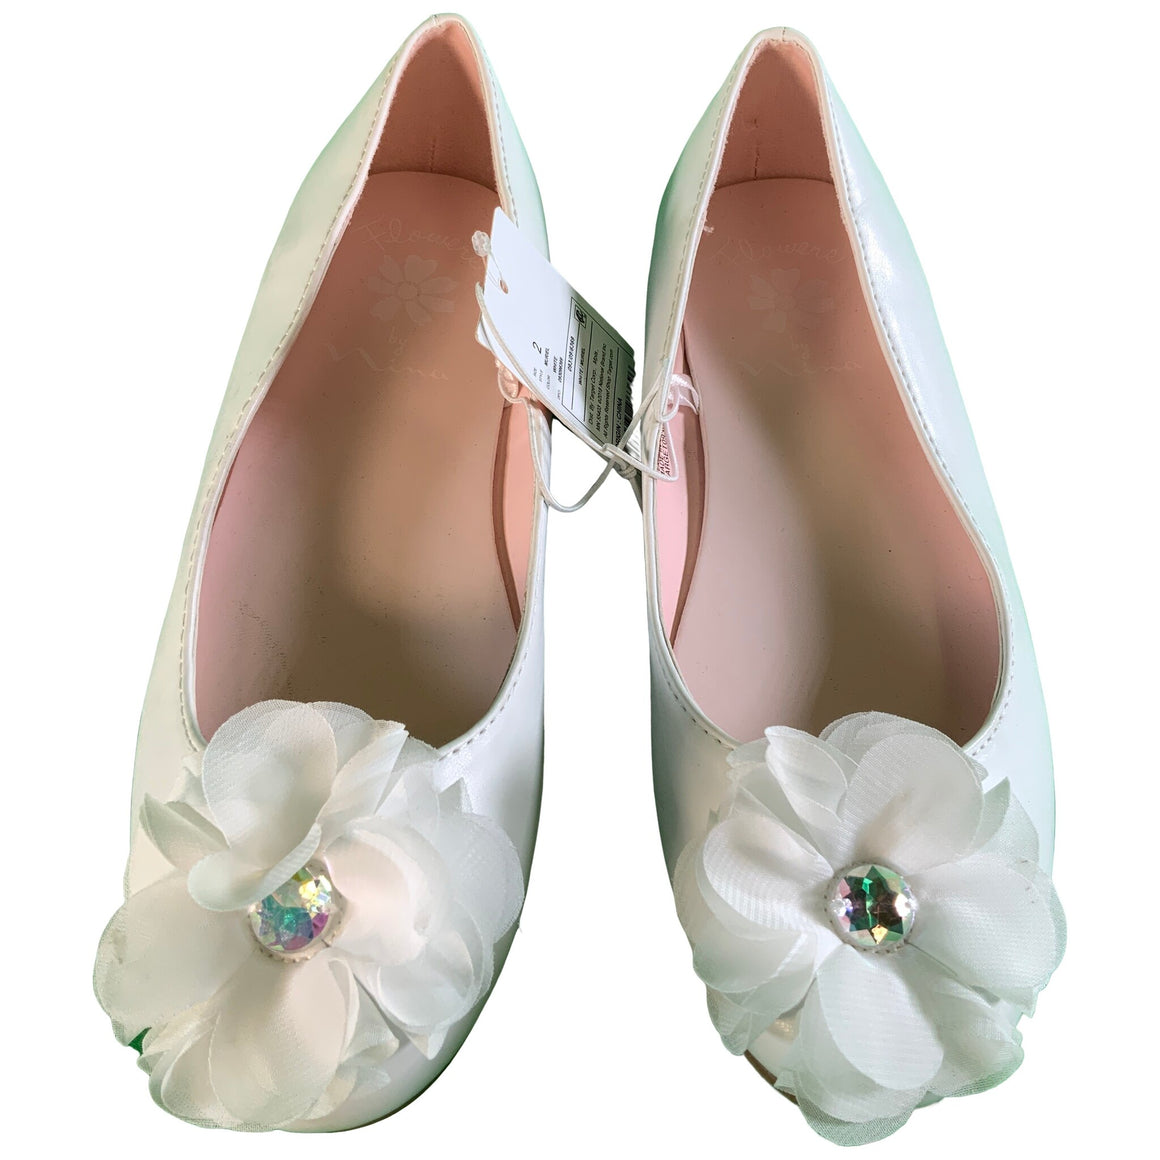 Girls' Dressy Ballet Flats - White 2 - Flowers By Nina Muriel